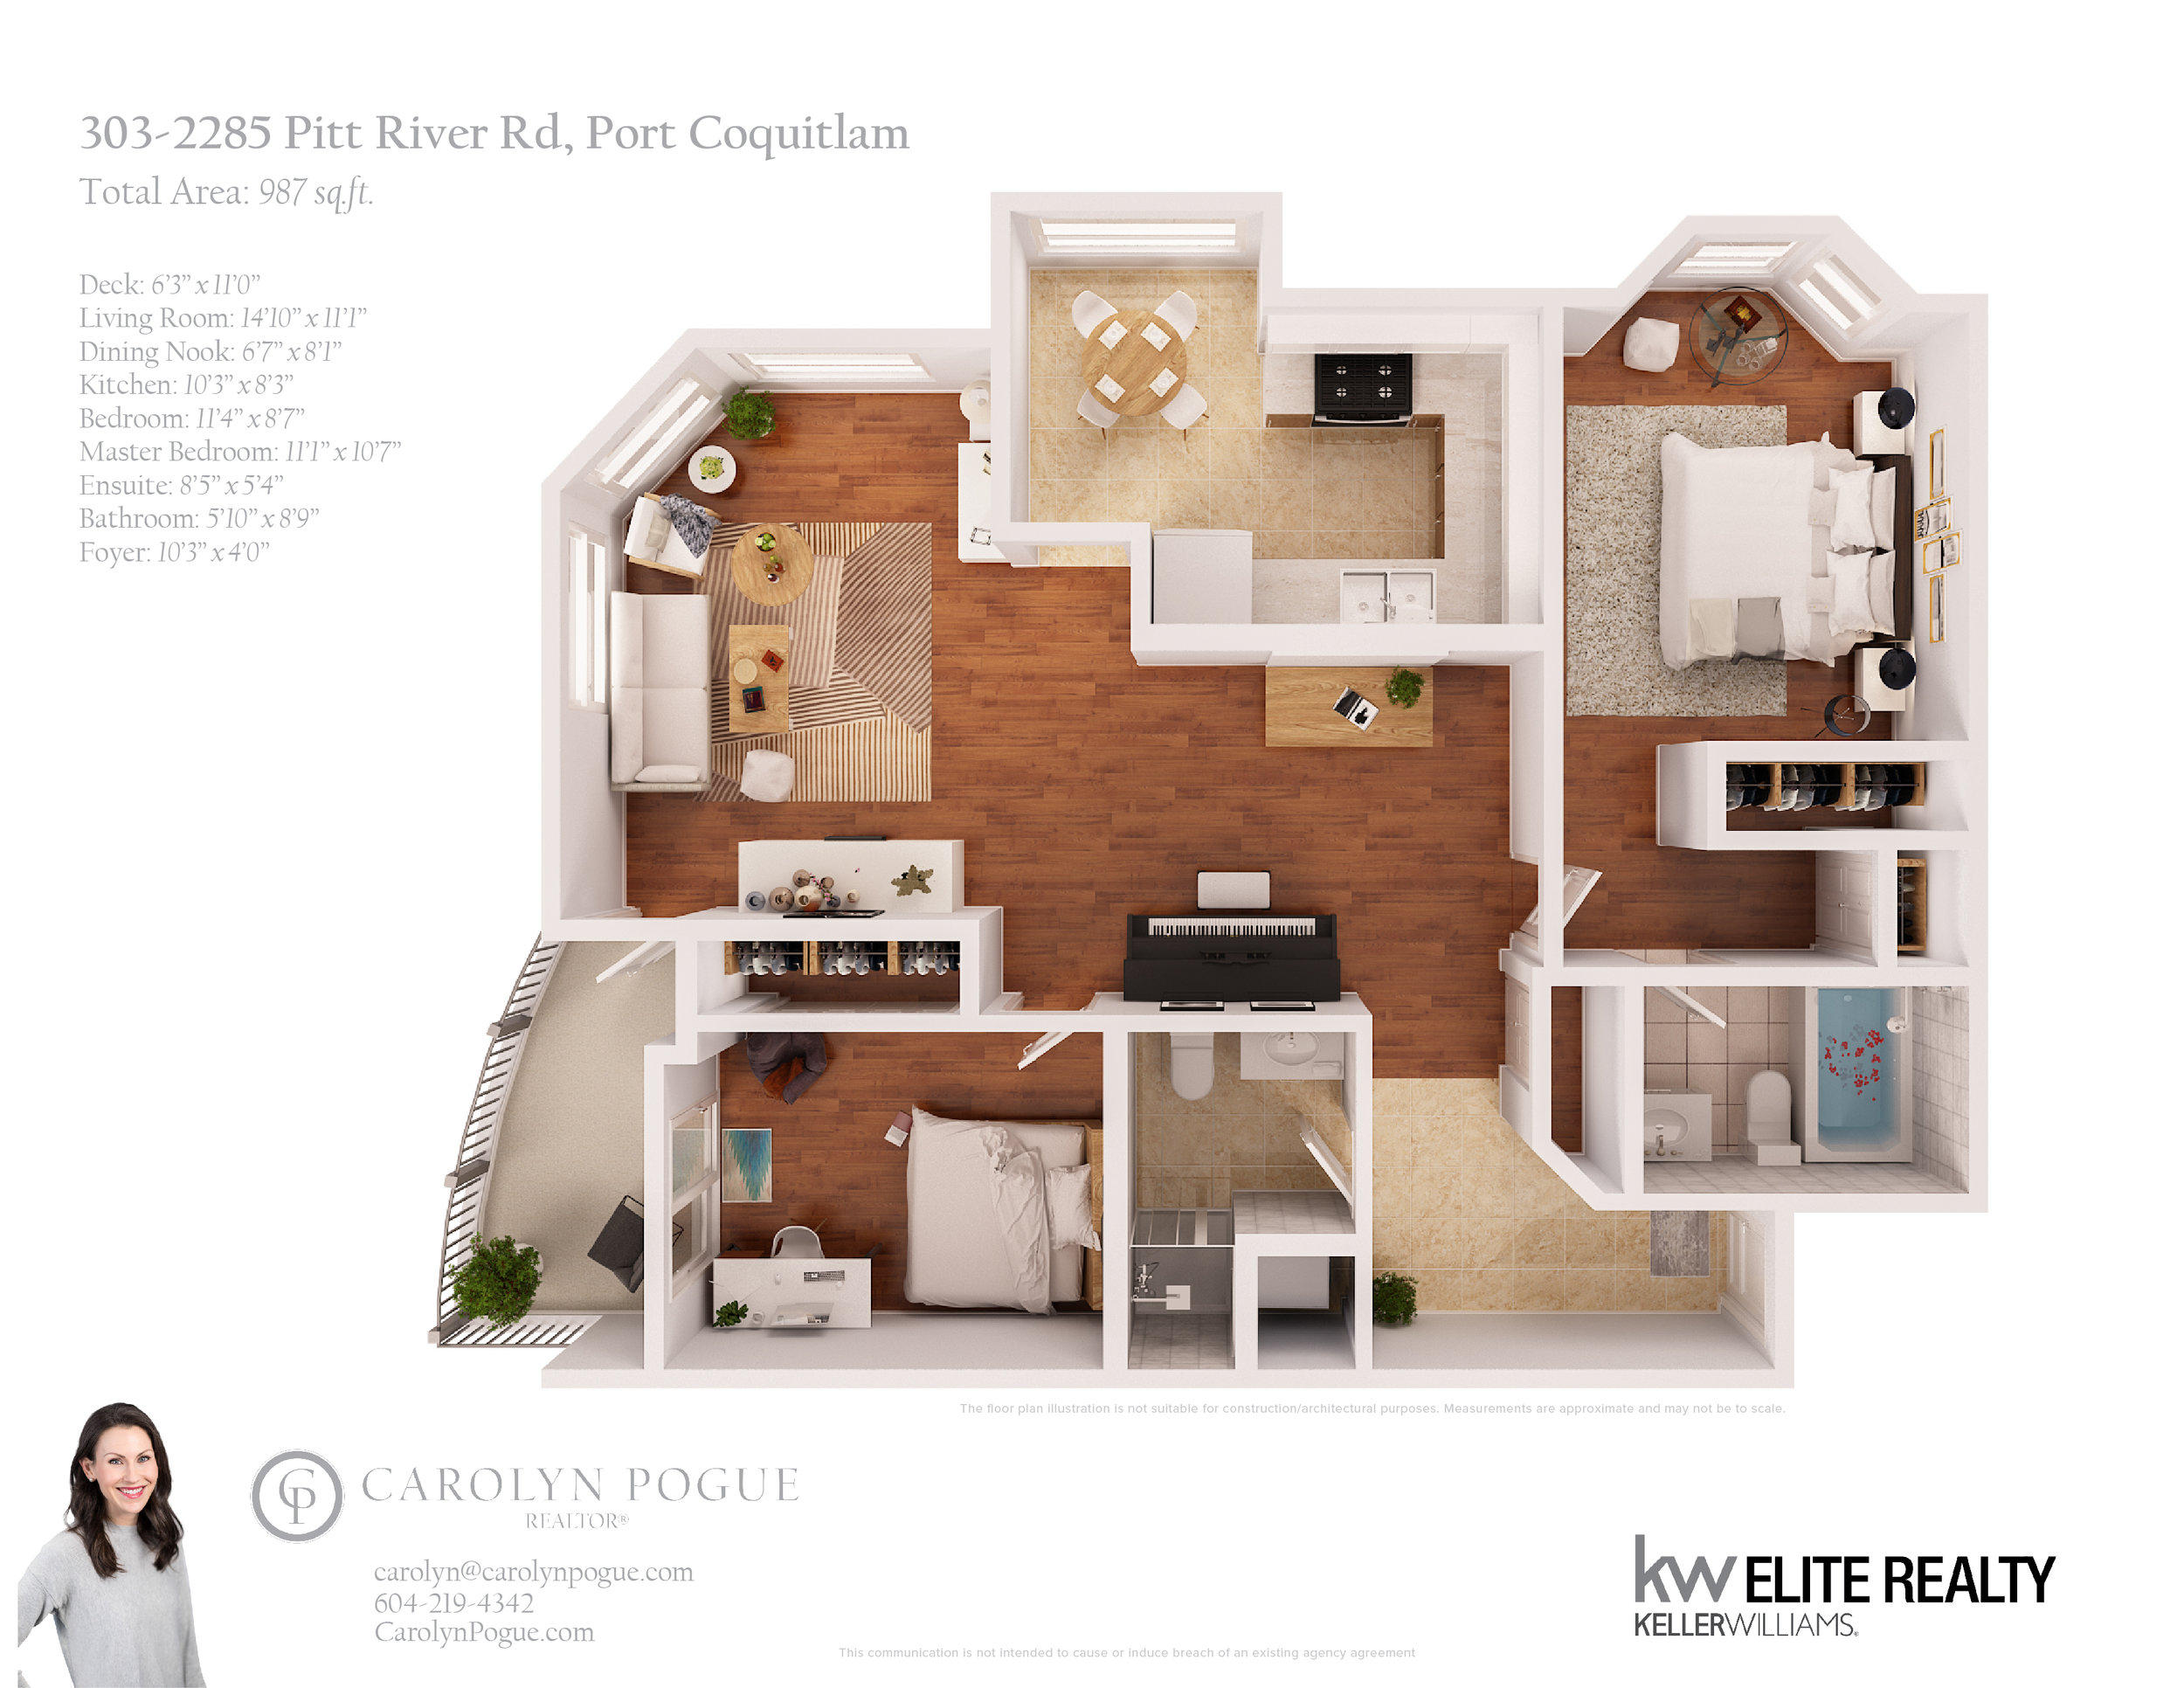 Carolyn-Pogue-Realtor-Floorplan